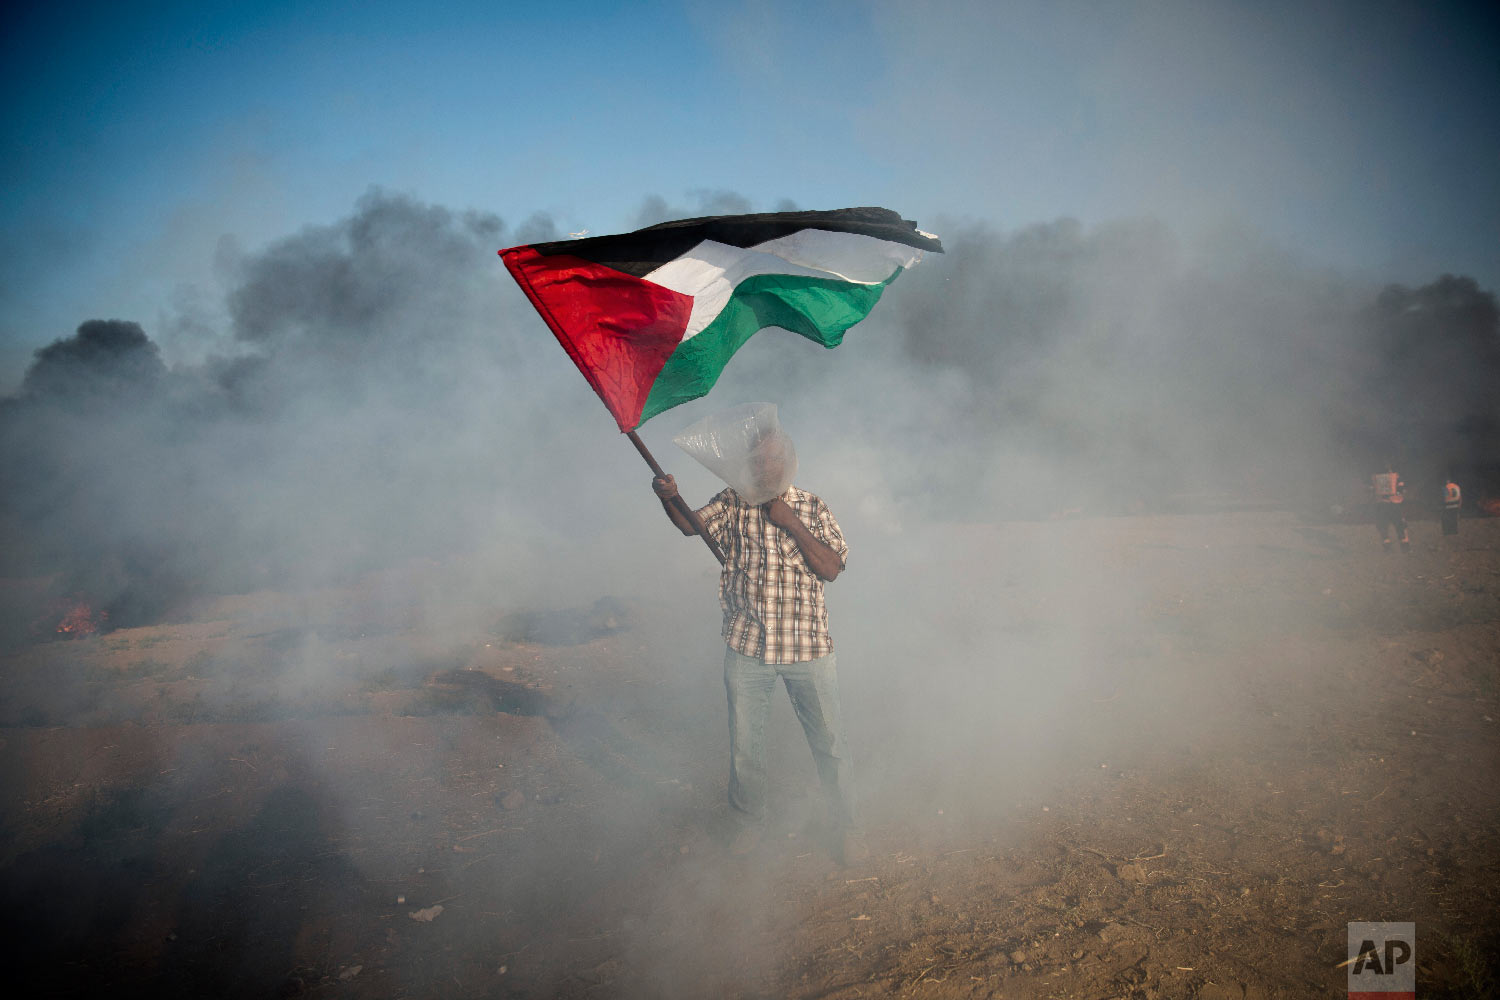 A Palestinian protester wears a plastic bag on his head as a protection from teargas, waves a national flag during a protest at the Gaza Strip's border with Israel, Friday, Aug.10, 2018. (AP Photo/Khalil Hamra)